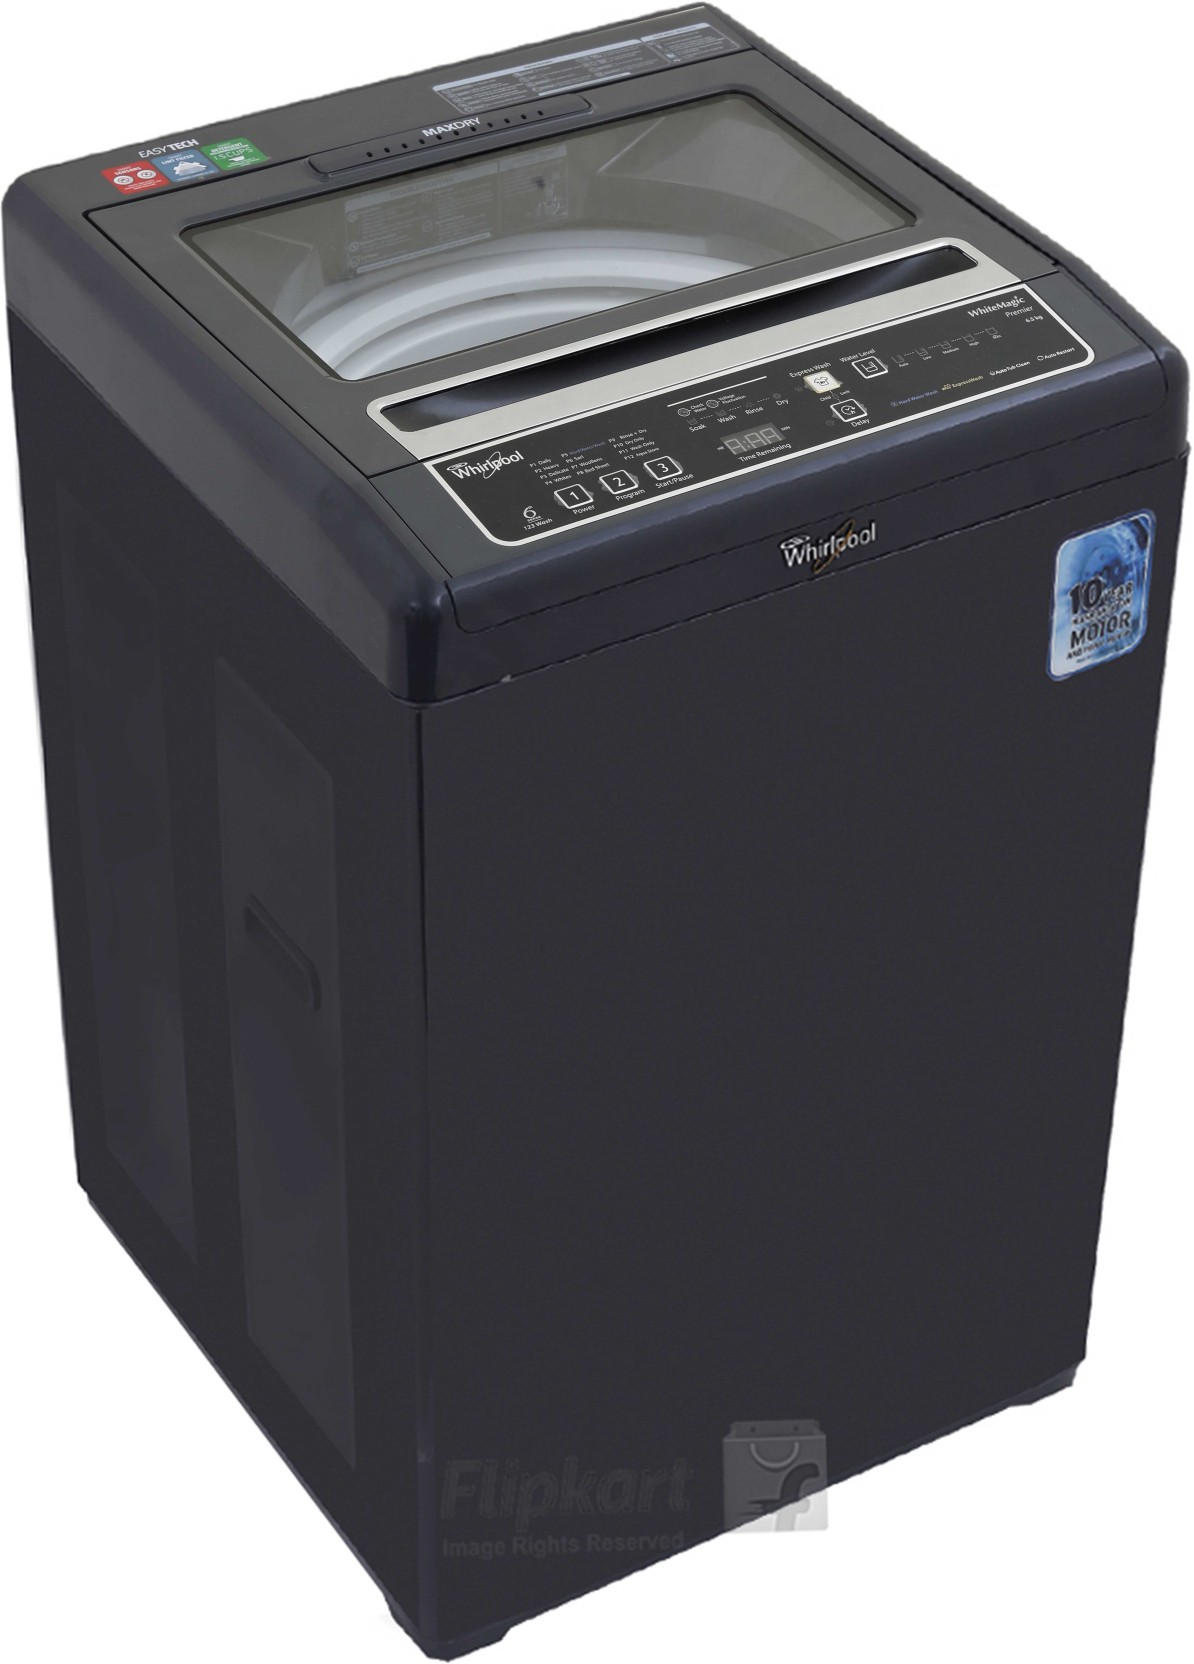 Whirlpool 6 5 kg fully automatic top load washing machine for Whirlpool washer motor price